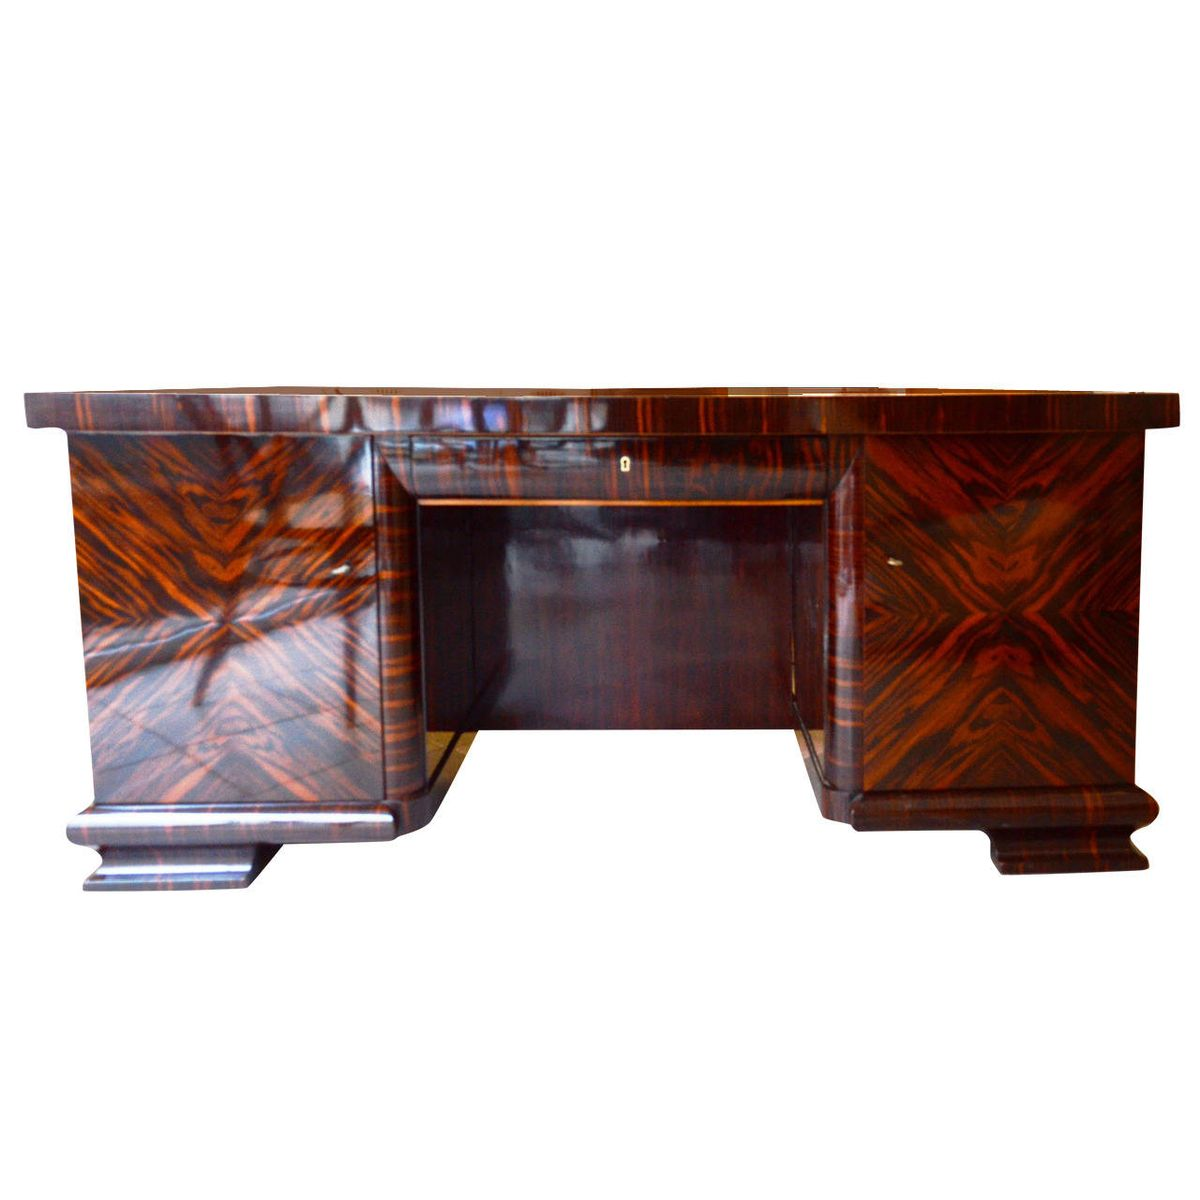 Art deco writing desk 1930s for sale at pamono for Art deco writing